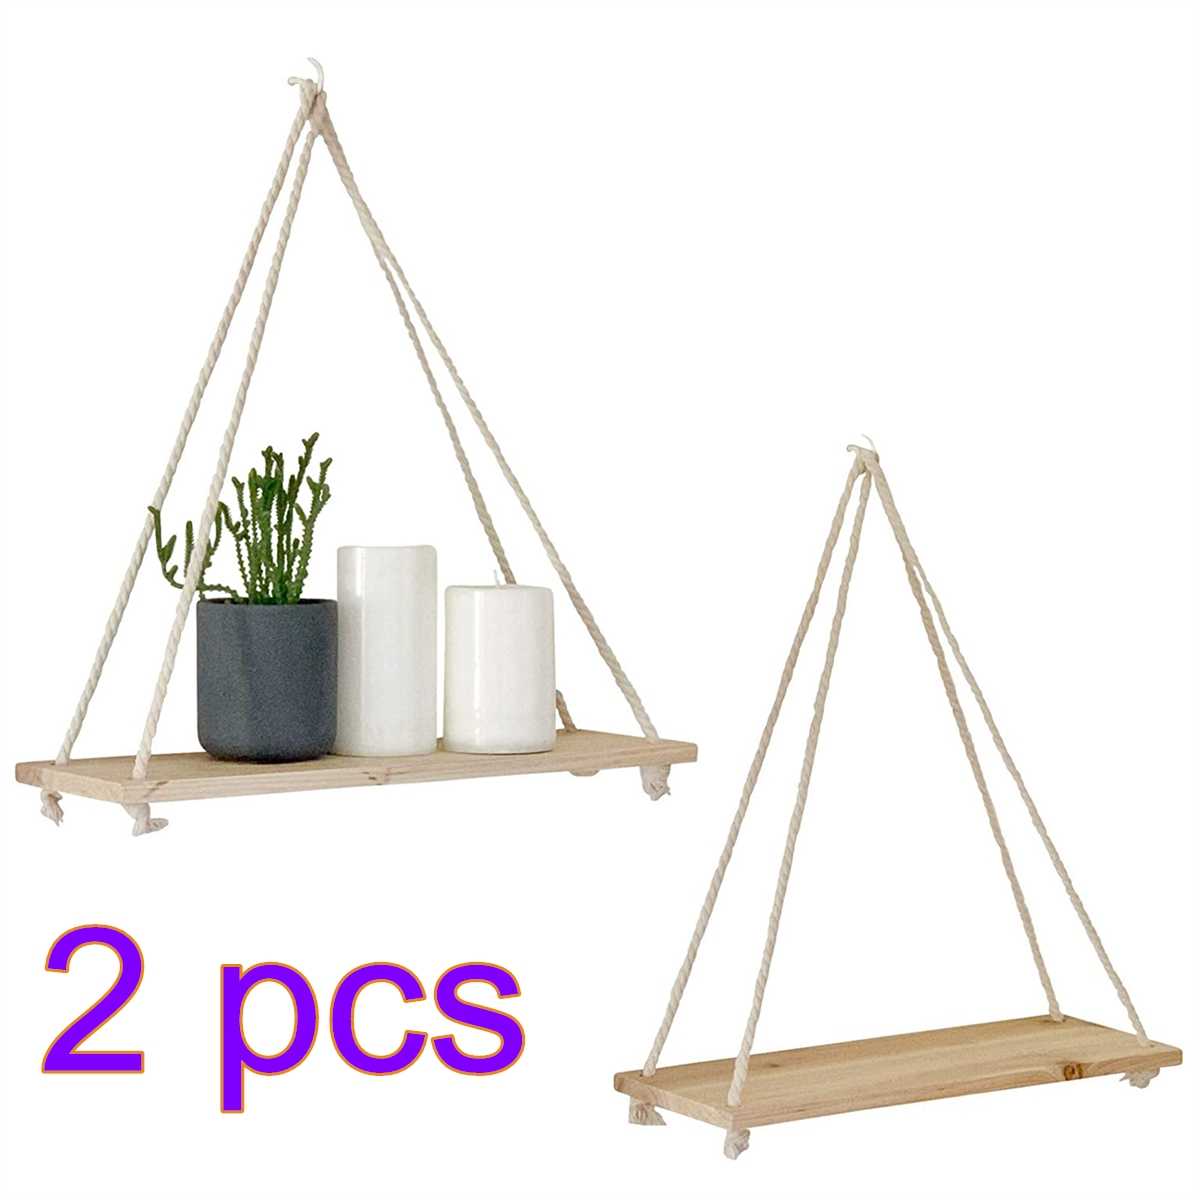 2PCS Wooden Rope Swing Wall Hanging Shelves Plant Flower Mounted Floating Wall Shelves Home Decoration Modern Simple Design